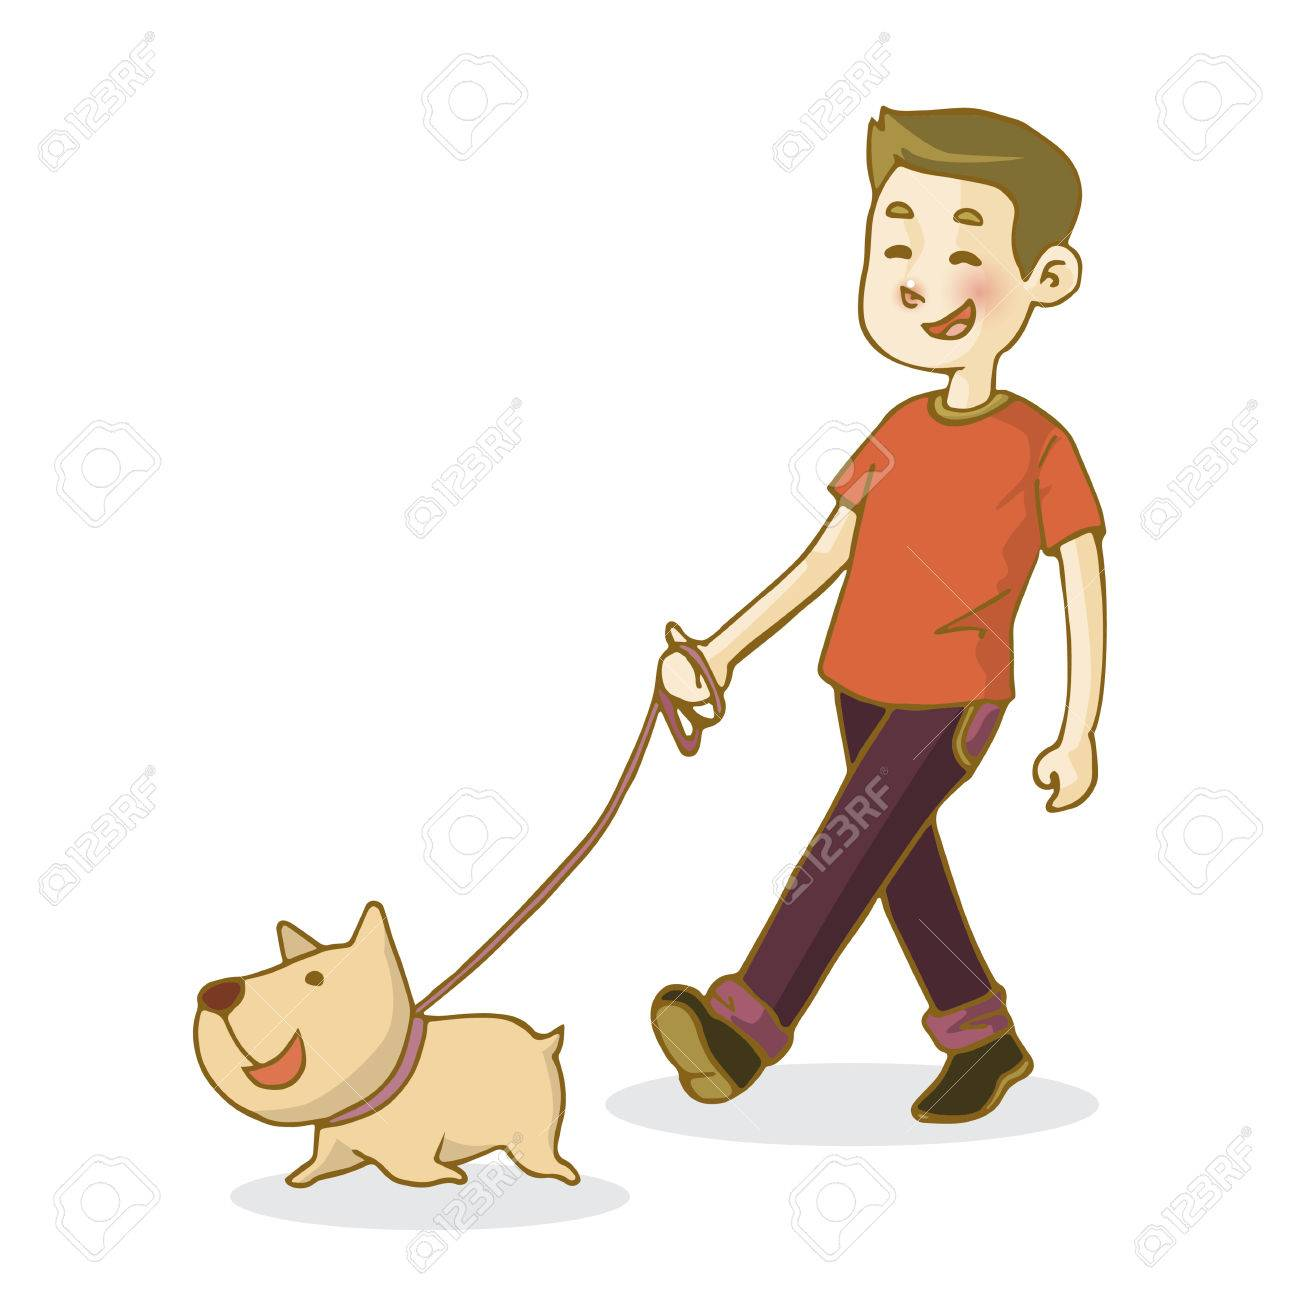 Young man walking dog, isolated on white background, vector illustration.